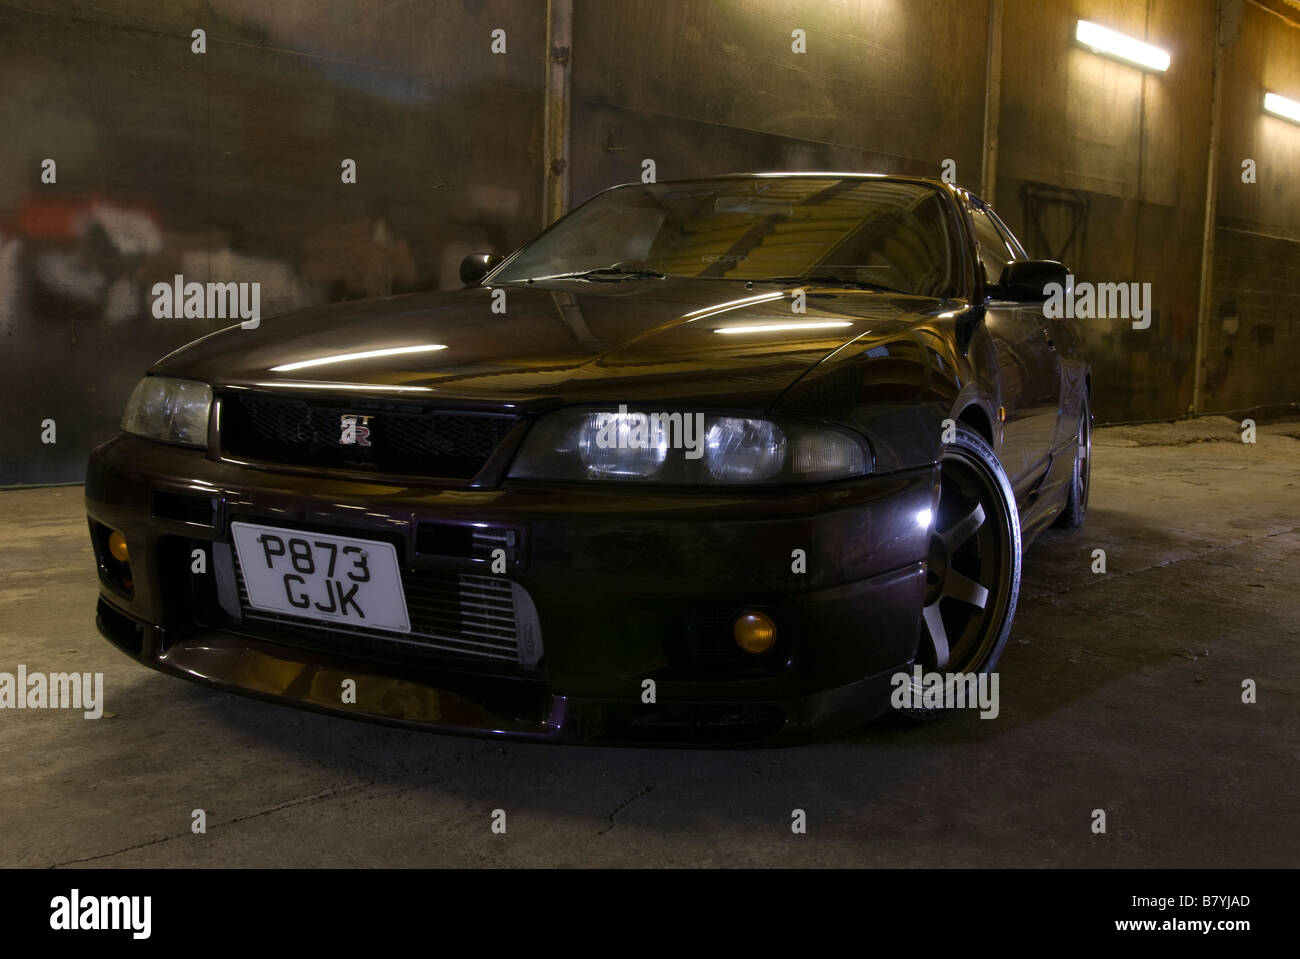 R33 Stock Photos R33 Stock Images Alamy